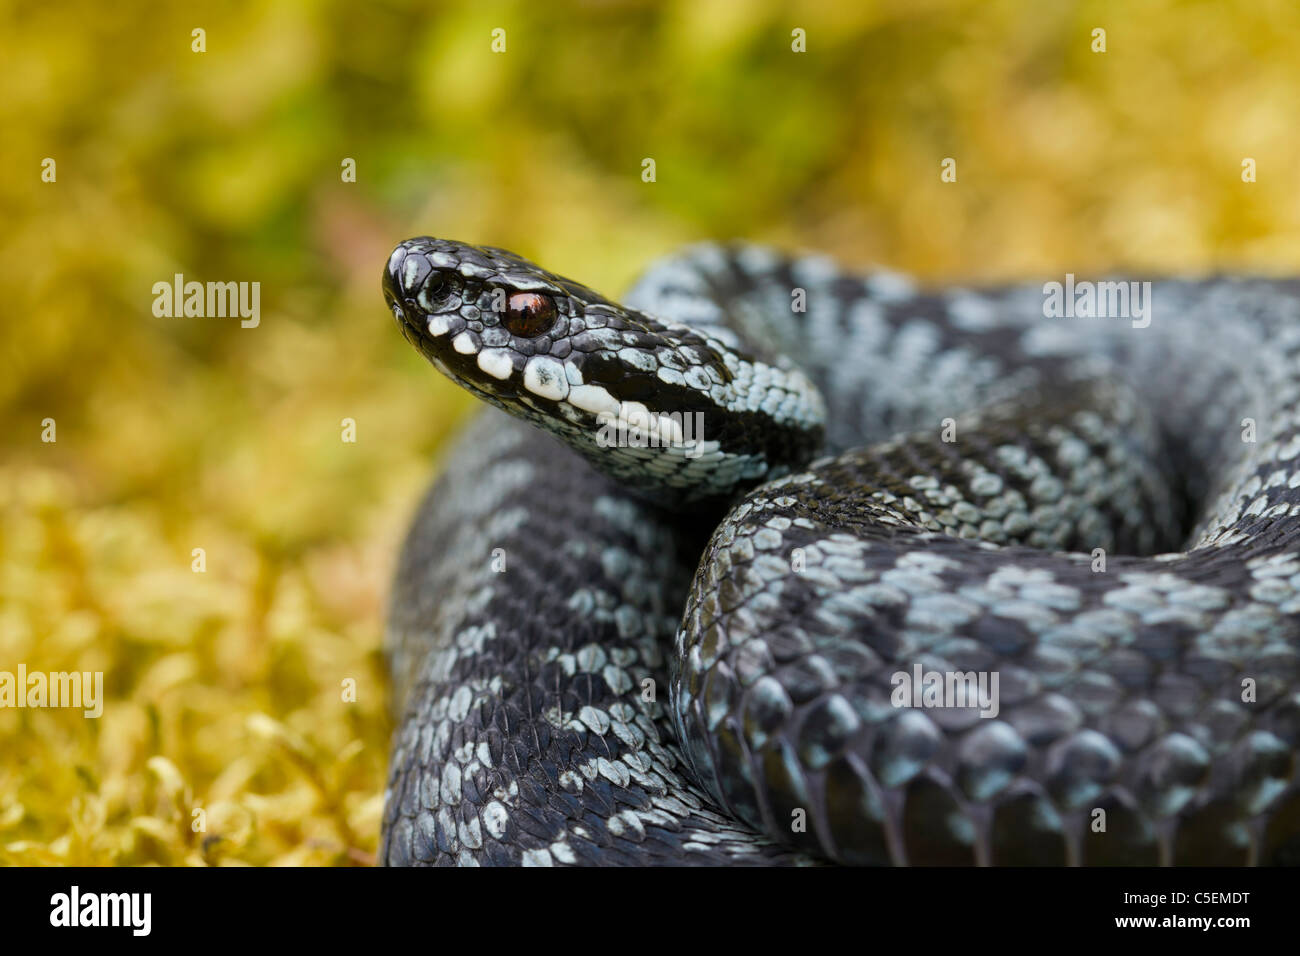 Common European adder / viper (Vipera berus) curled up in striking pose, grey color phase, Sweden - Stock Image